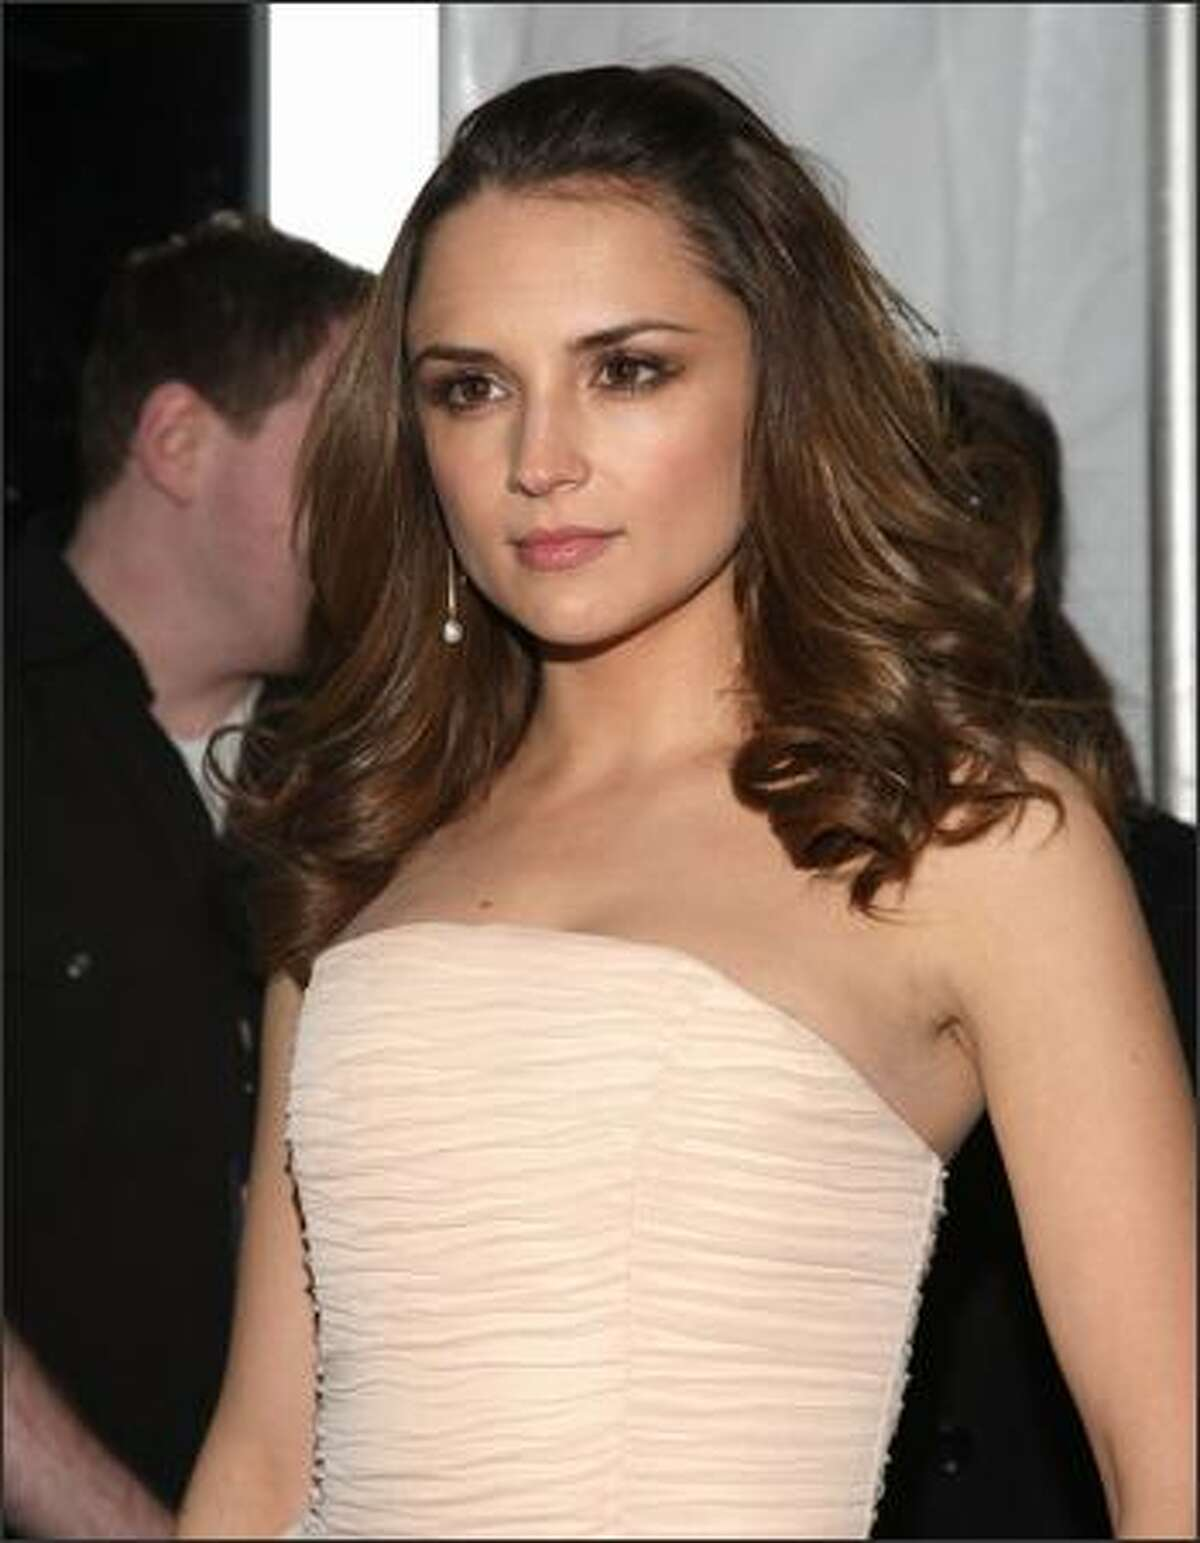 Actress Rachael Leigh Cook attends the Creative Coalition's 2009 Inaugural Ball at the Harman Center for the Arts on Tuesday in Washington, DC.